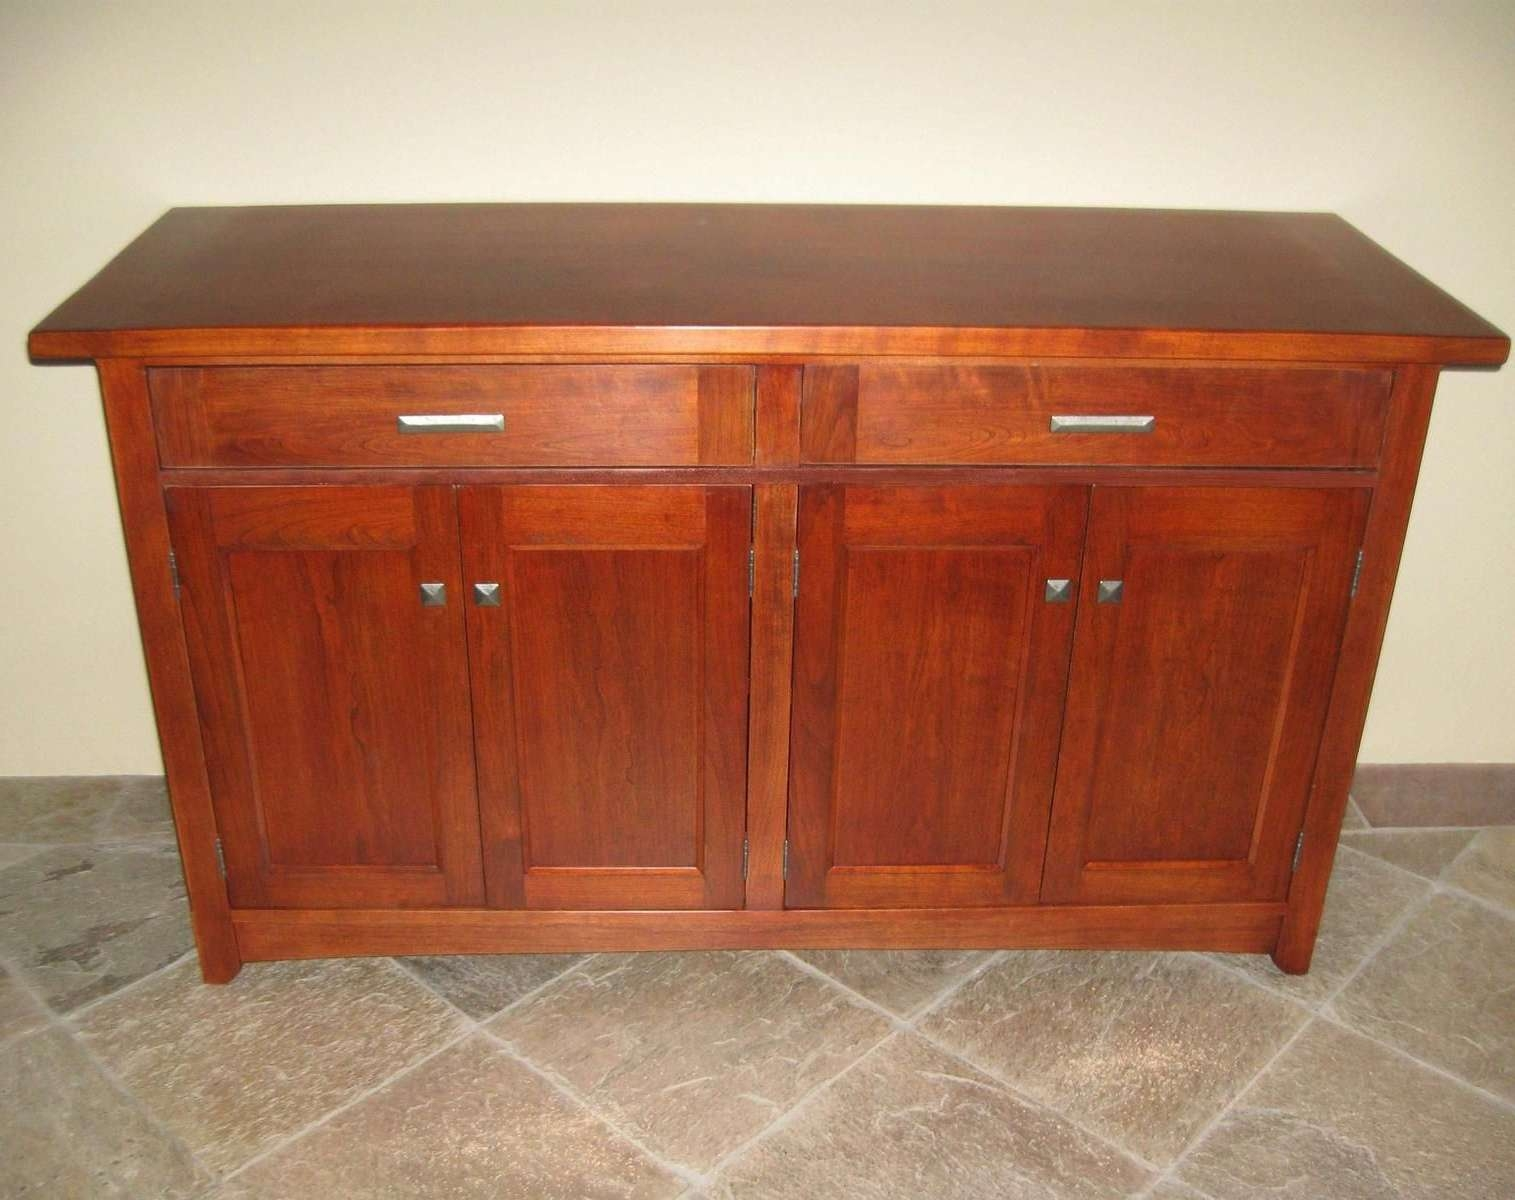 Custom Cherry Sideboardalexander Woodworking | Custommade In Cherry Sideboards (View 6 of 20)